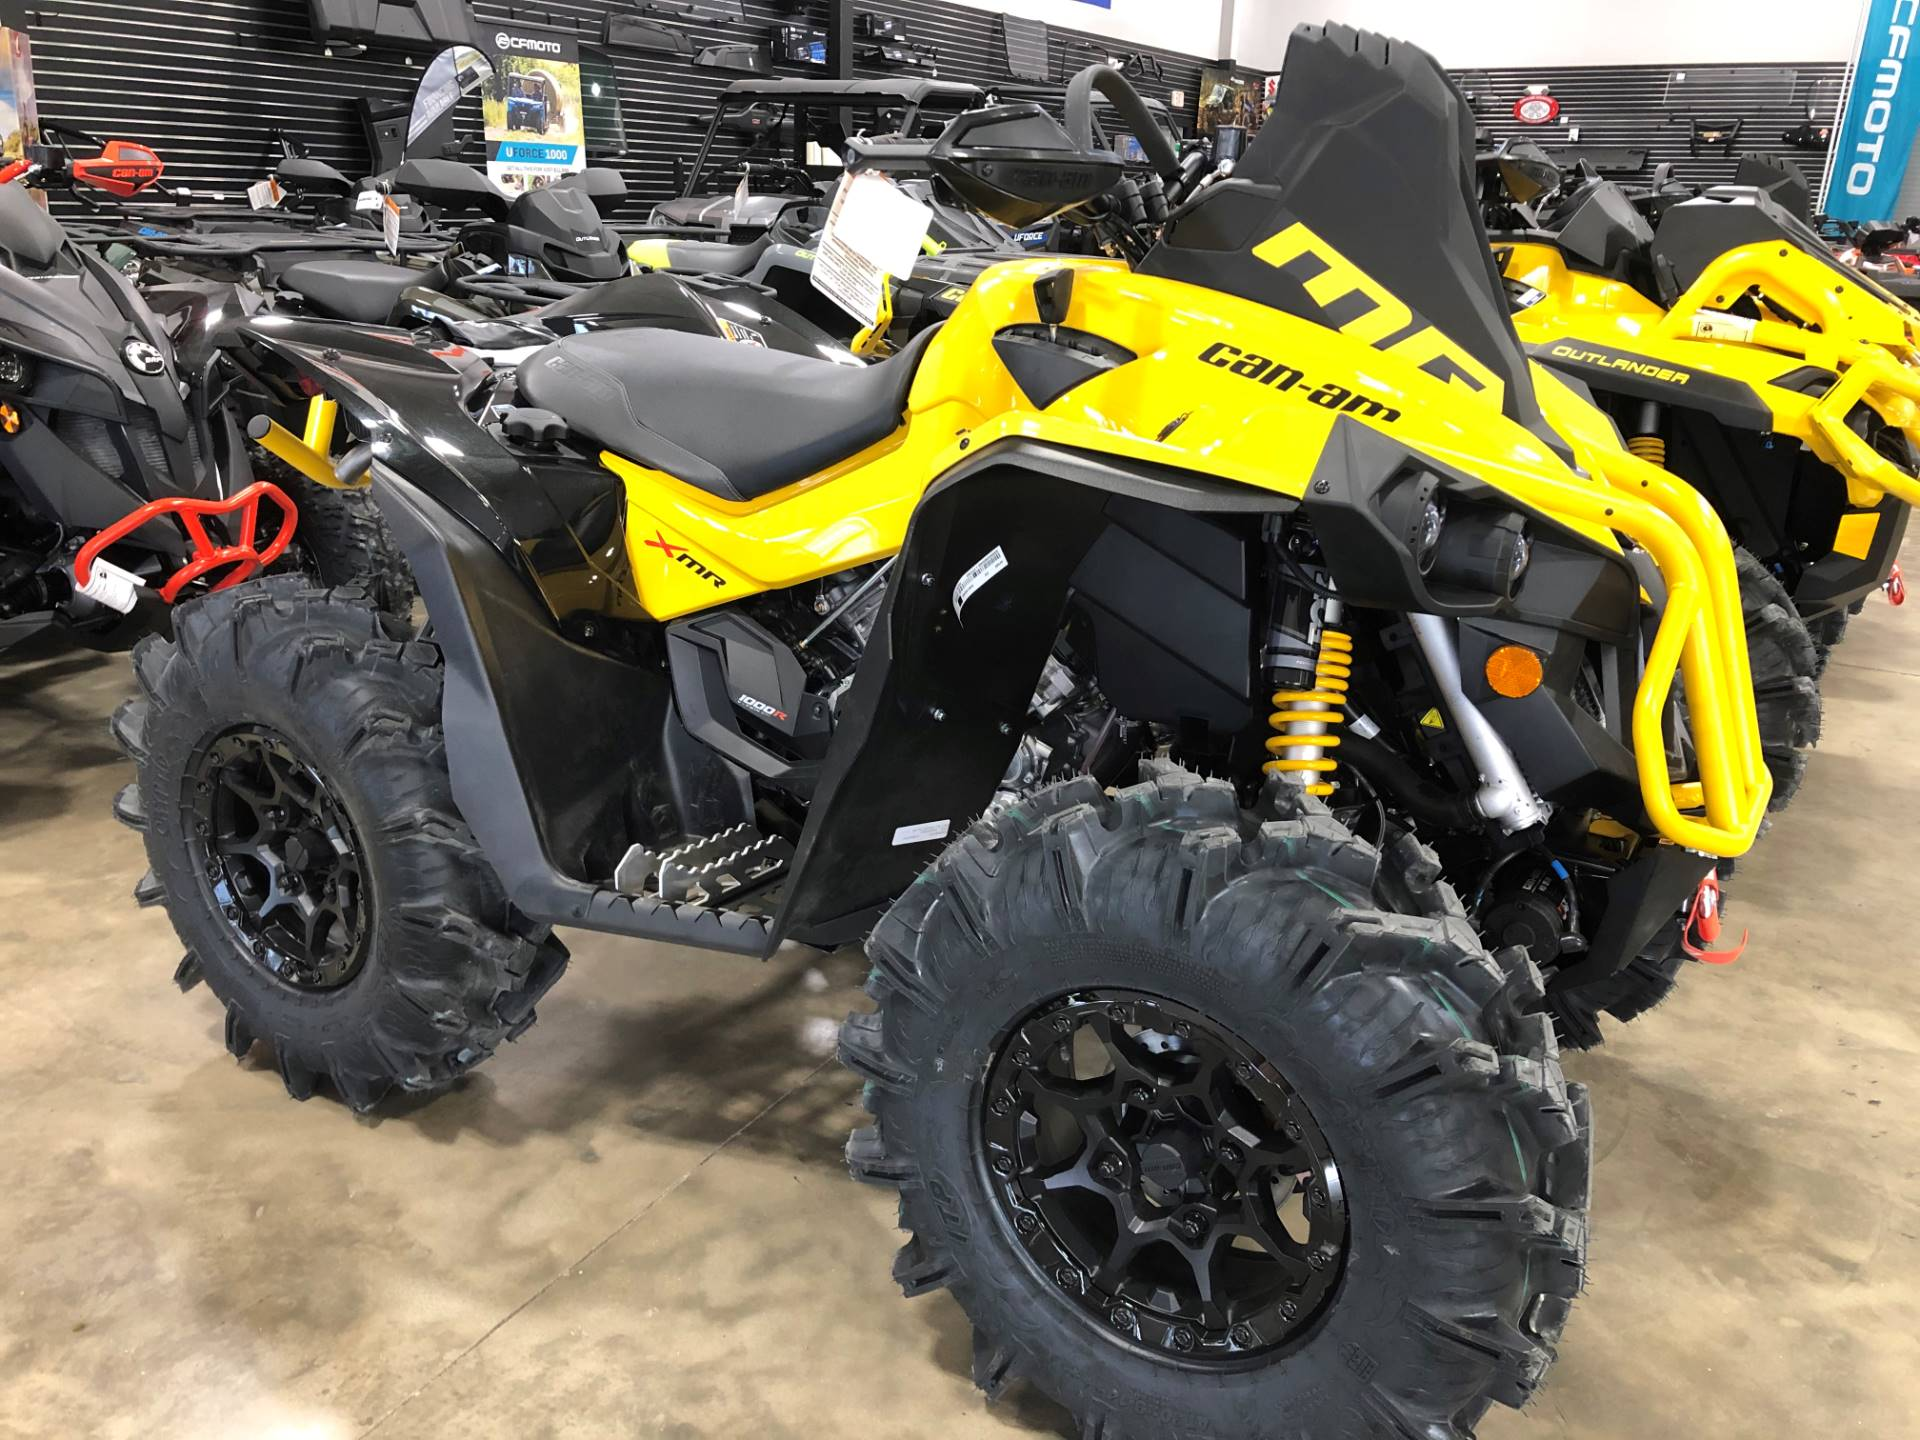 2021 Can-Am Renegade X MR 1000R with Visco-4Lok in Leland, Mississippi - Photo 2